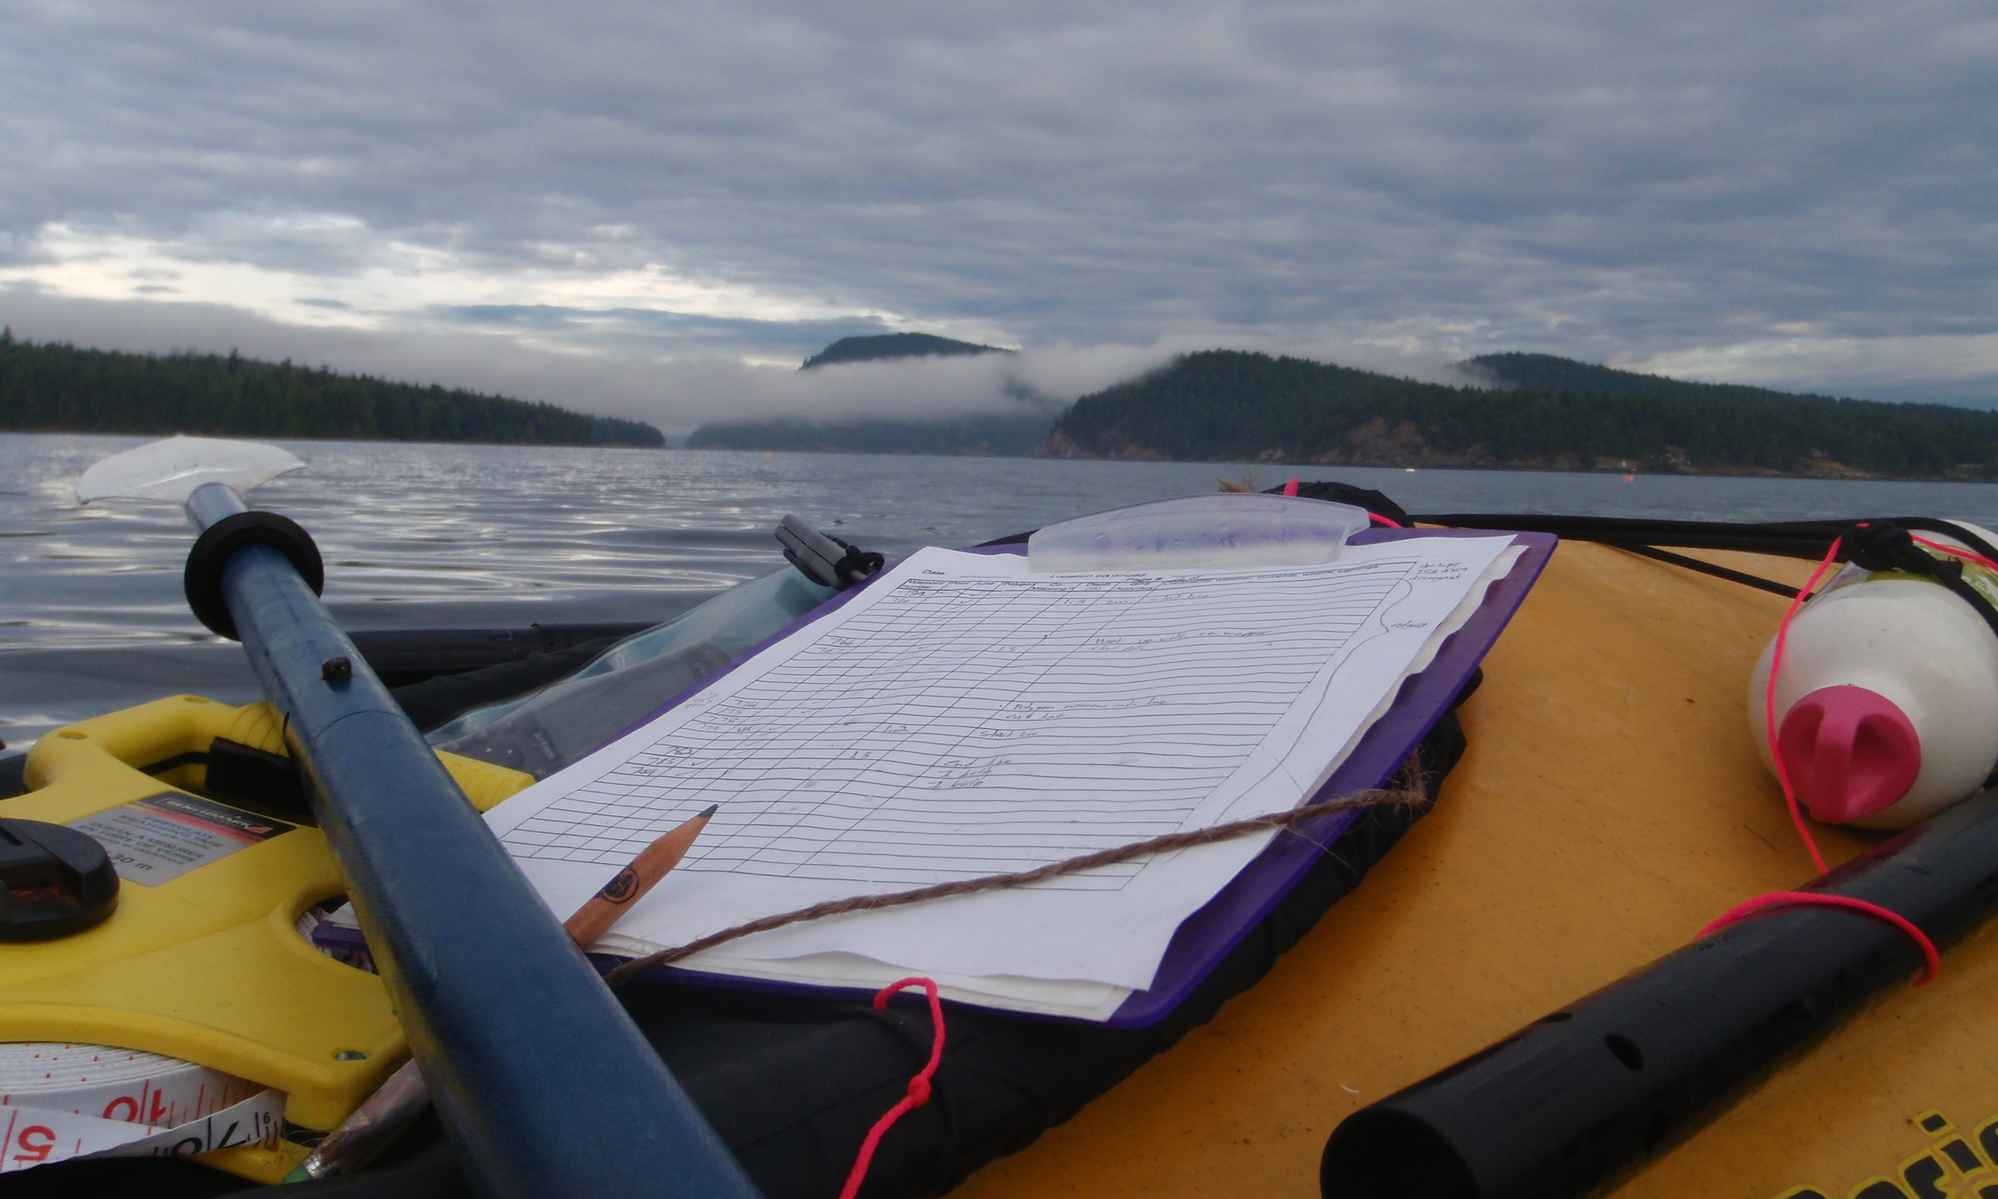 Bugles and Baselines - Mayne Island Conservancy